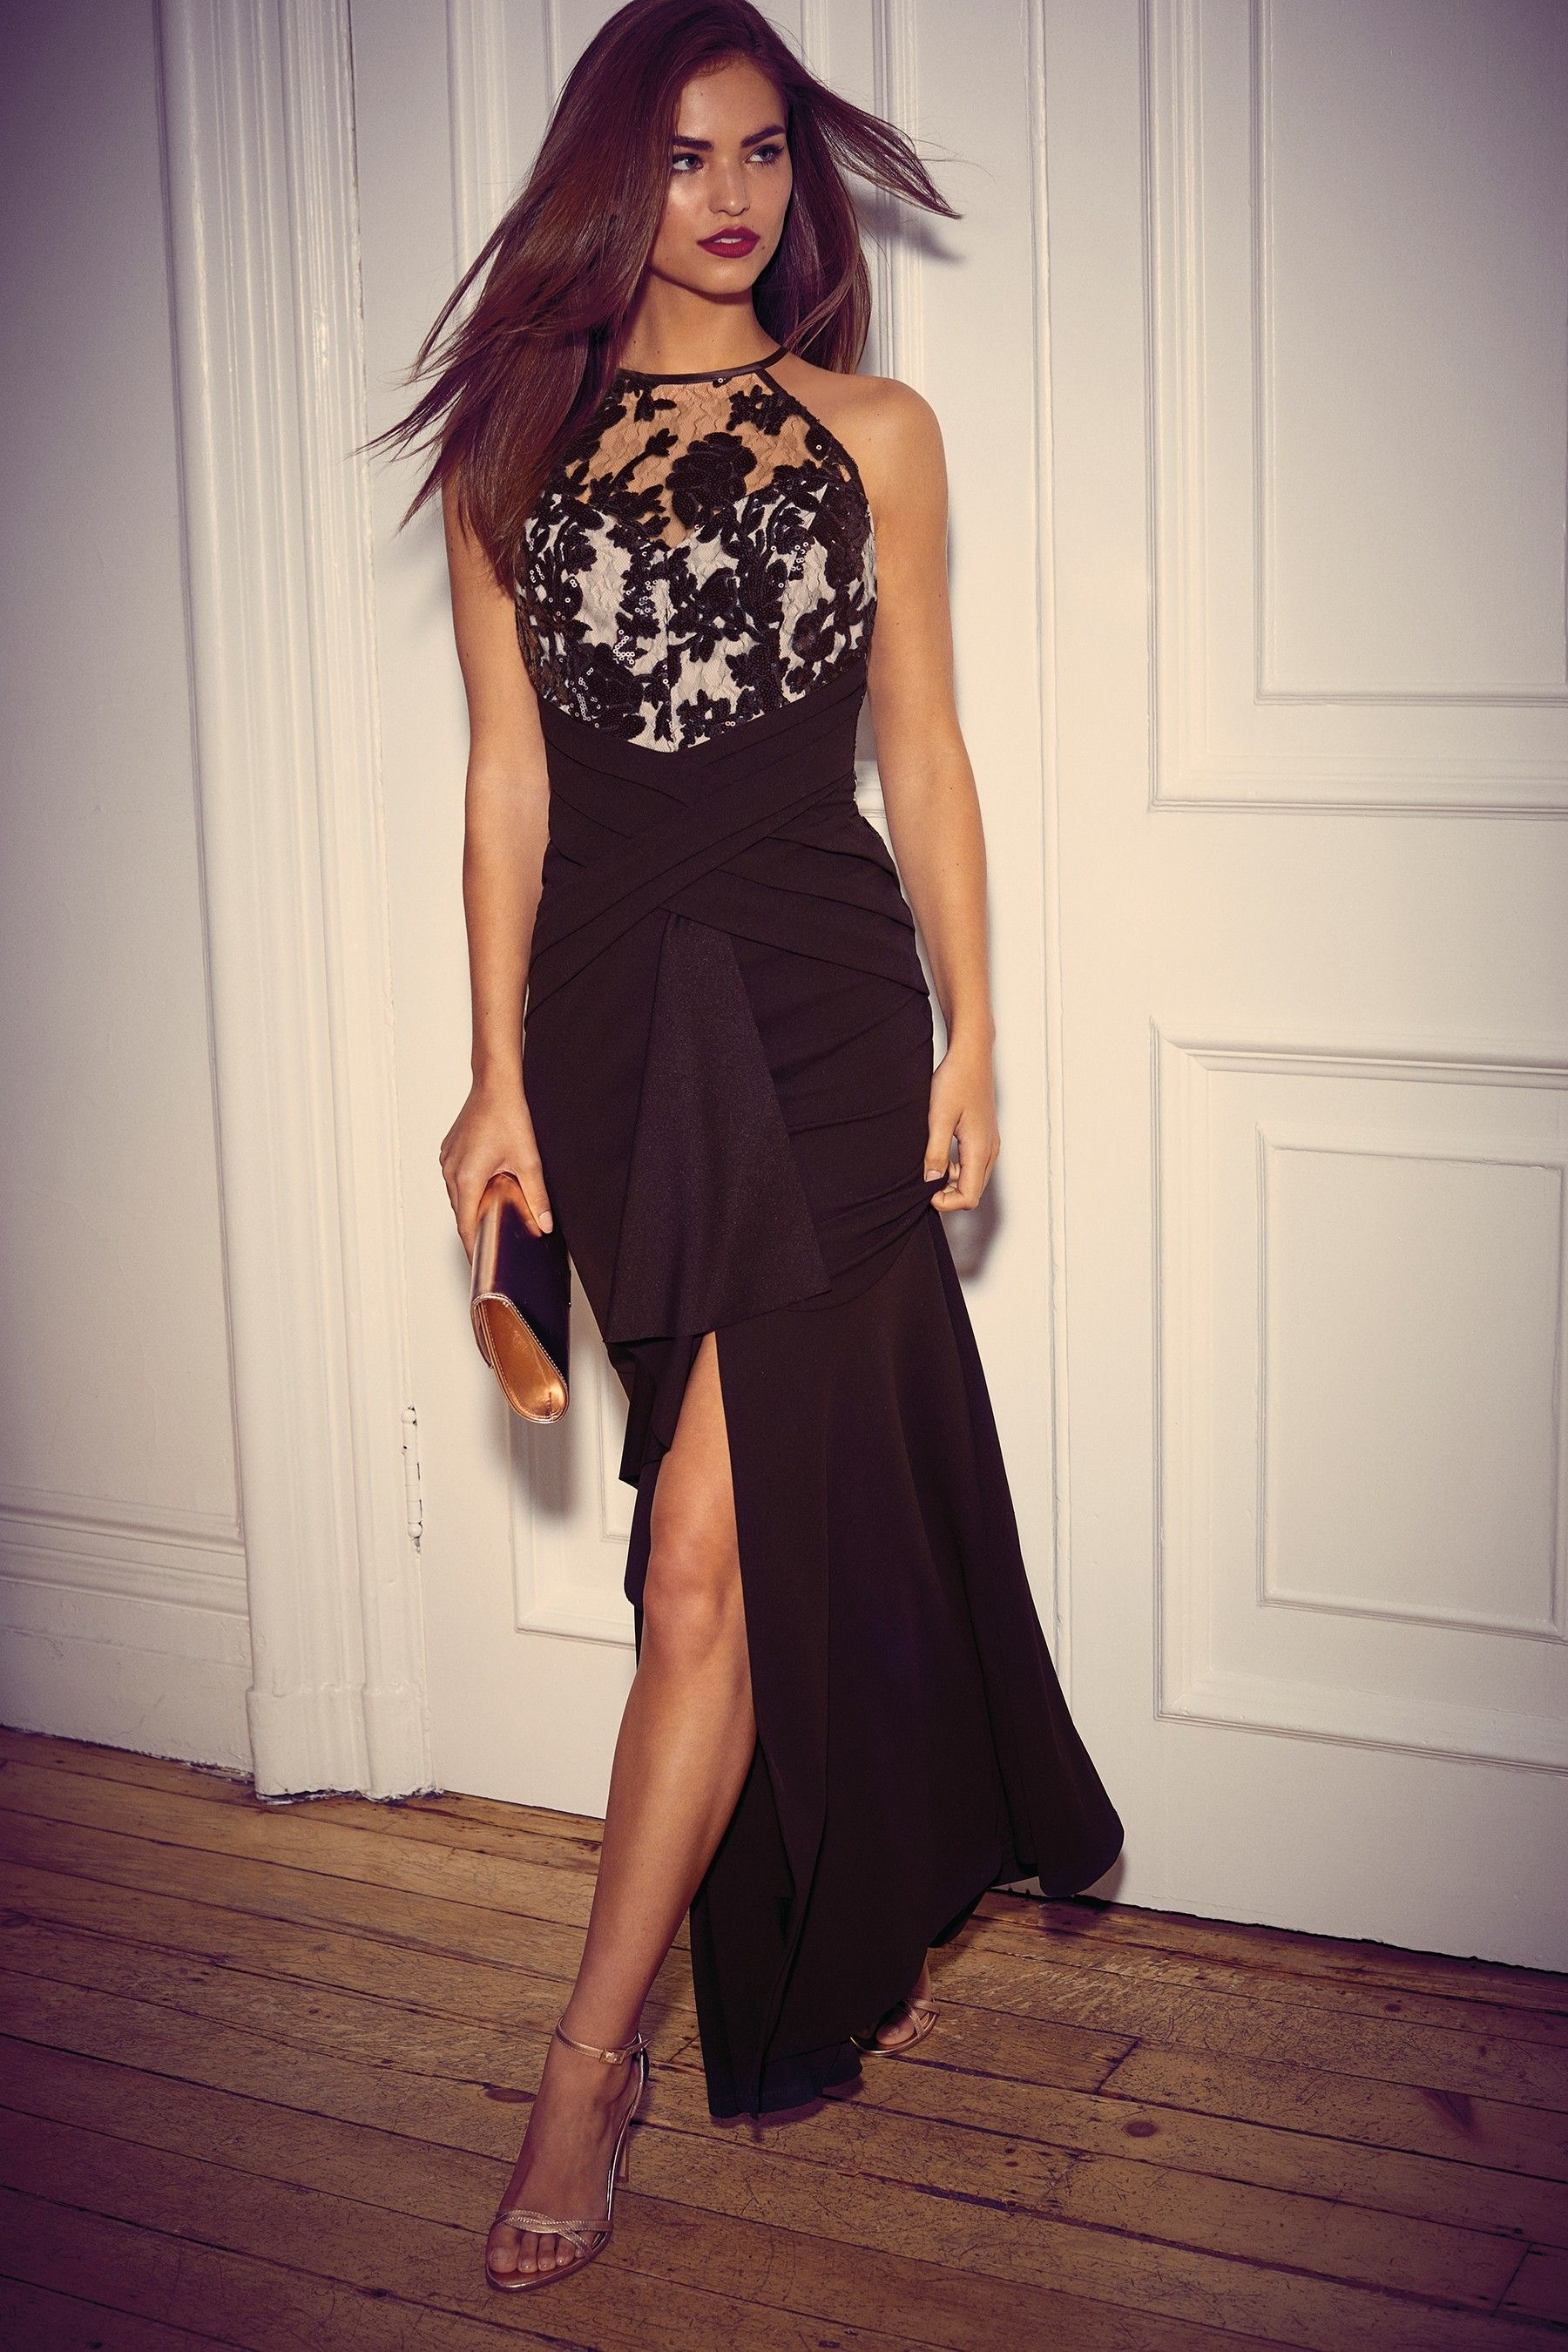 Buy Lipsy Petite Sequin Built Up Maxi Dress From The Next Uk Online Shop Dress For Petite Women Embellished Maxi Dress Dresses